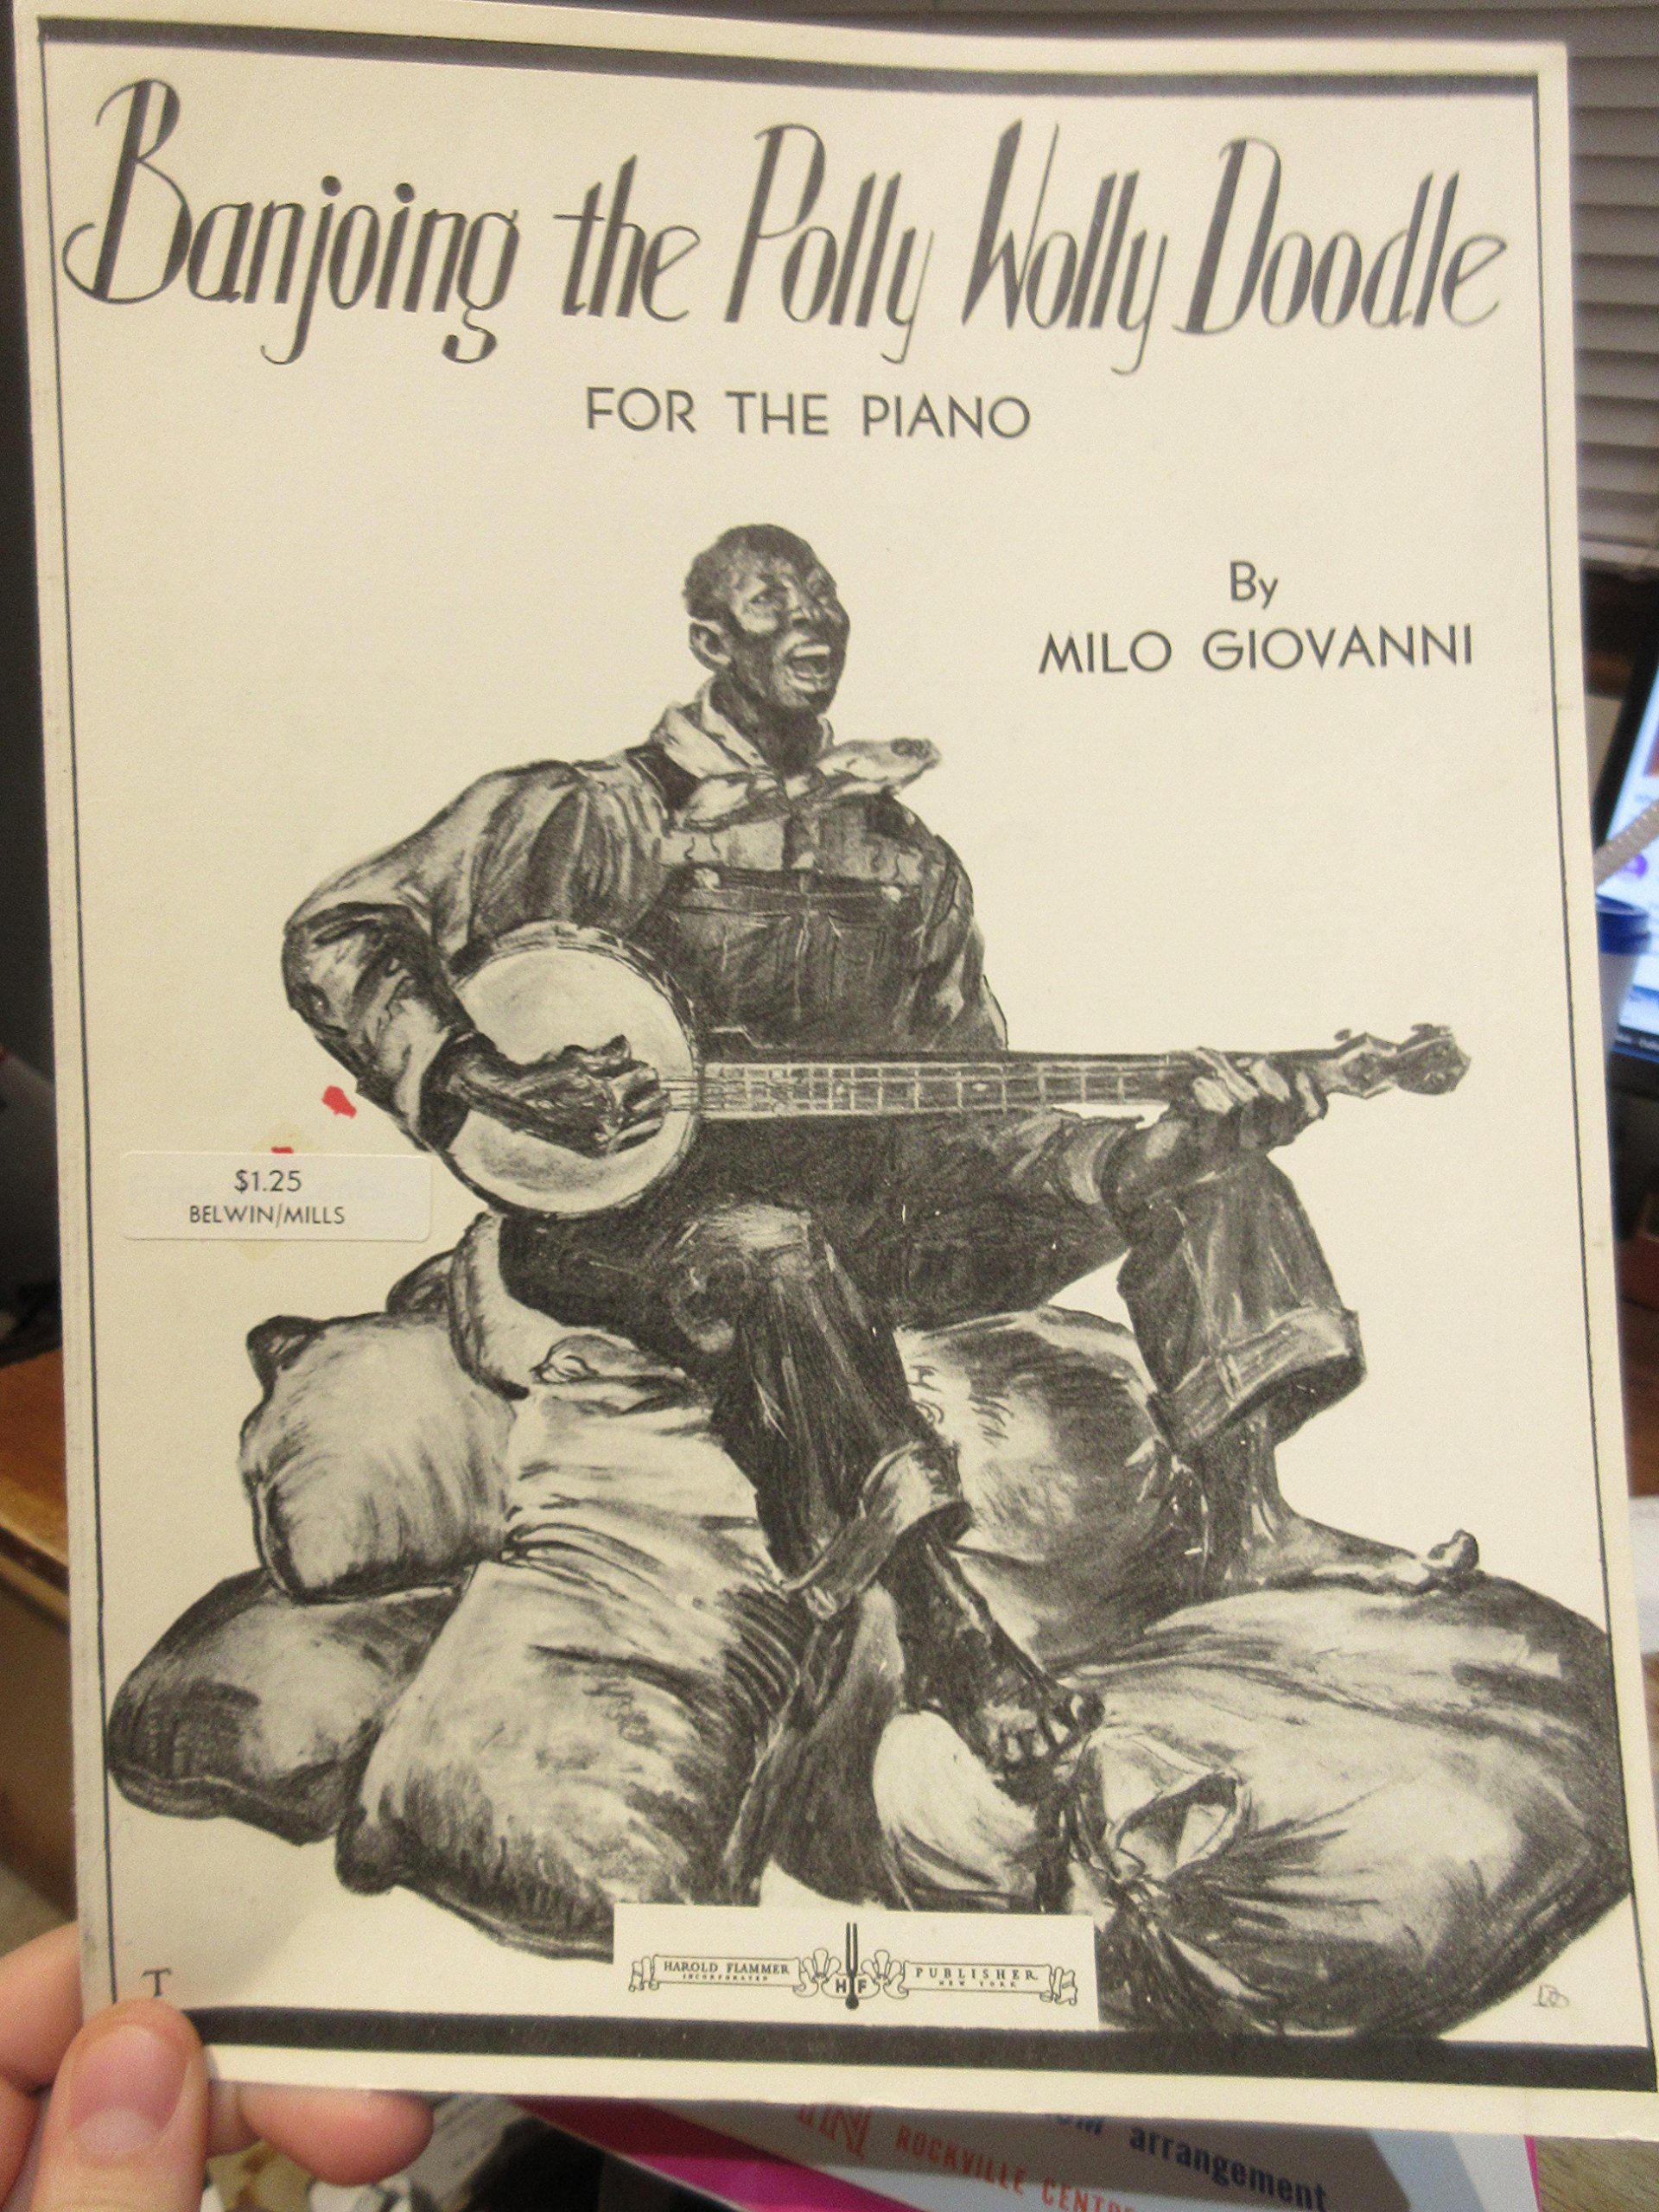 Banjoing the Polly Wolly Doodle for the piano [solo]